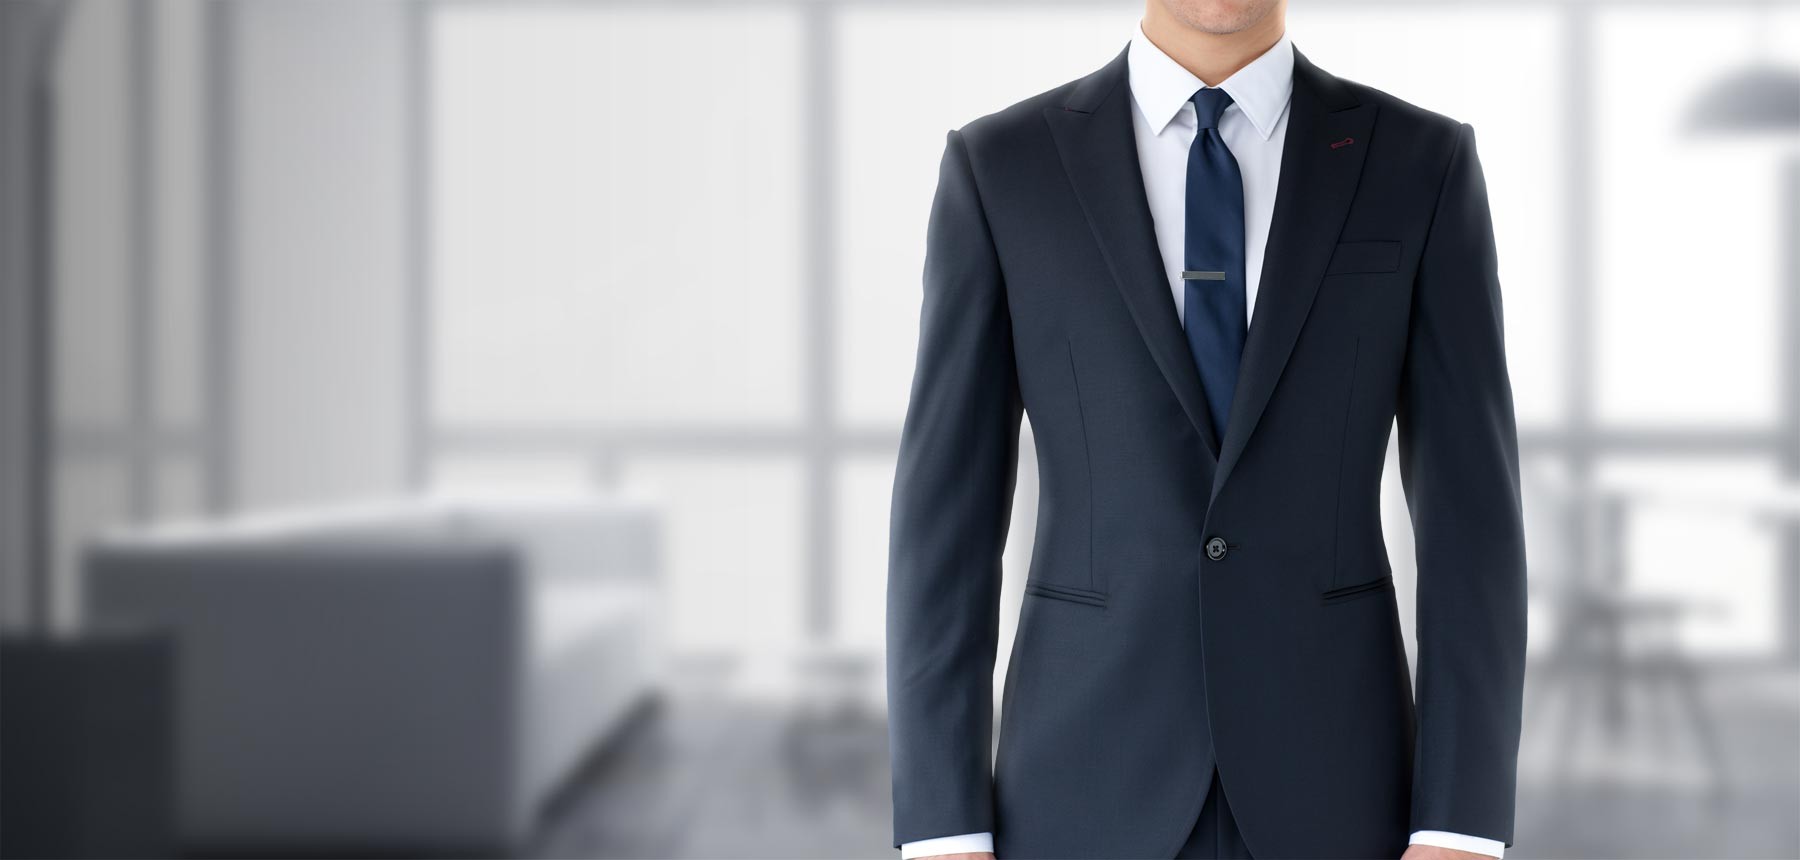 Tips For Caring For Men's Suits